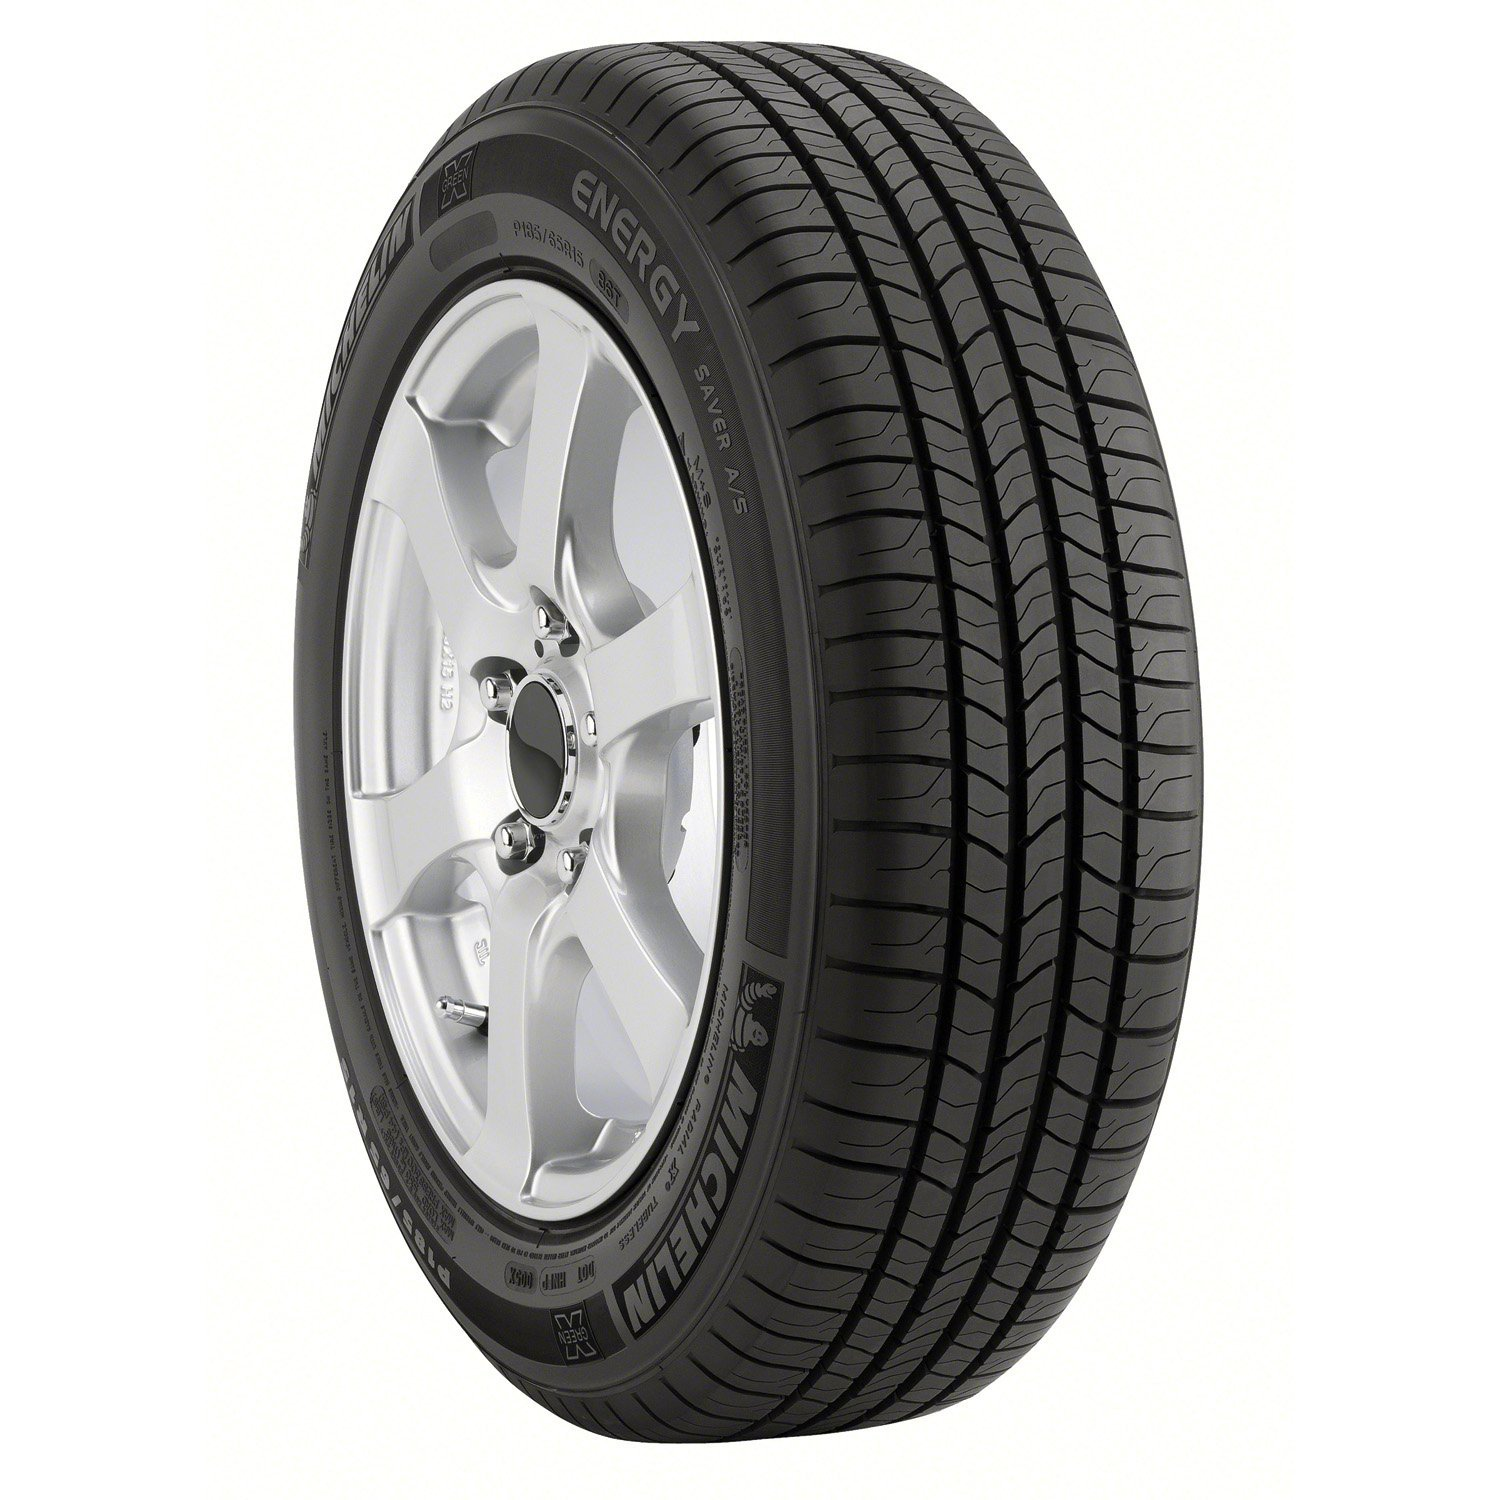 Michelin Energy Saver A/S All-Season Radial Tire - 195/65R15 91T 34184